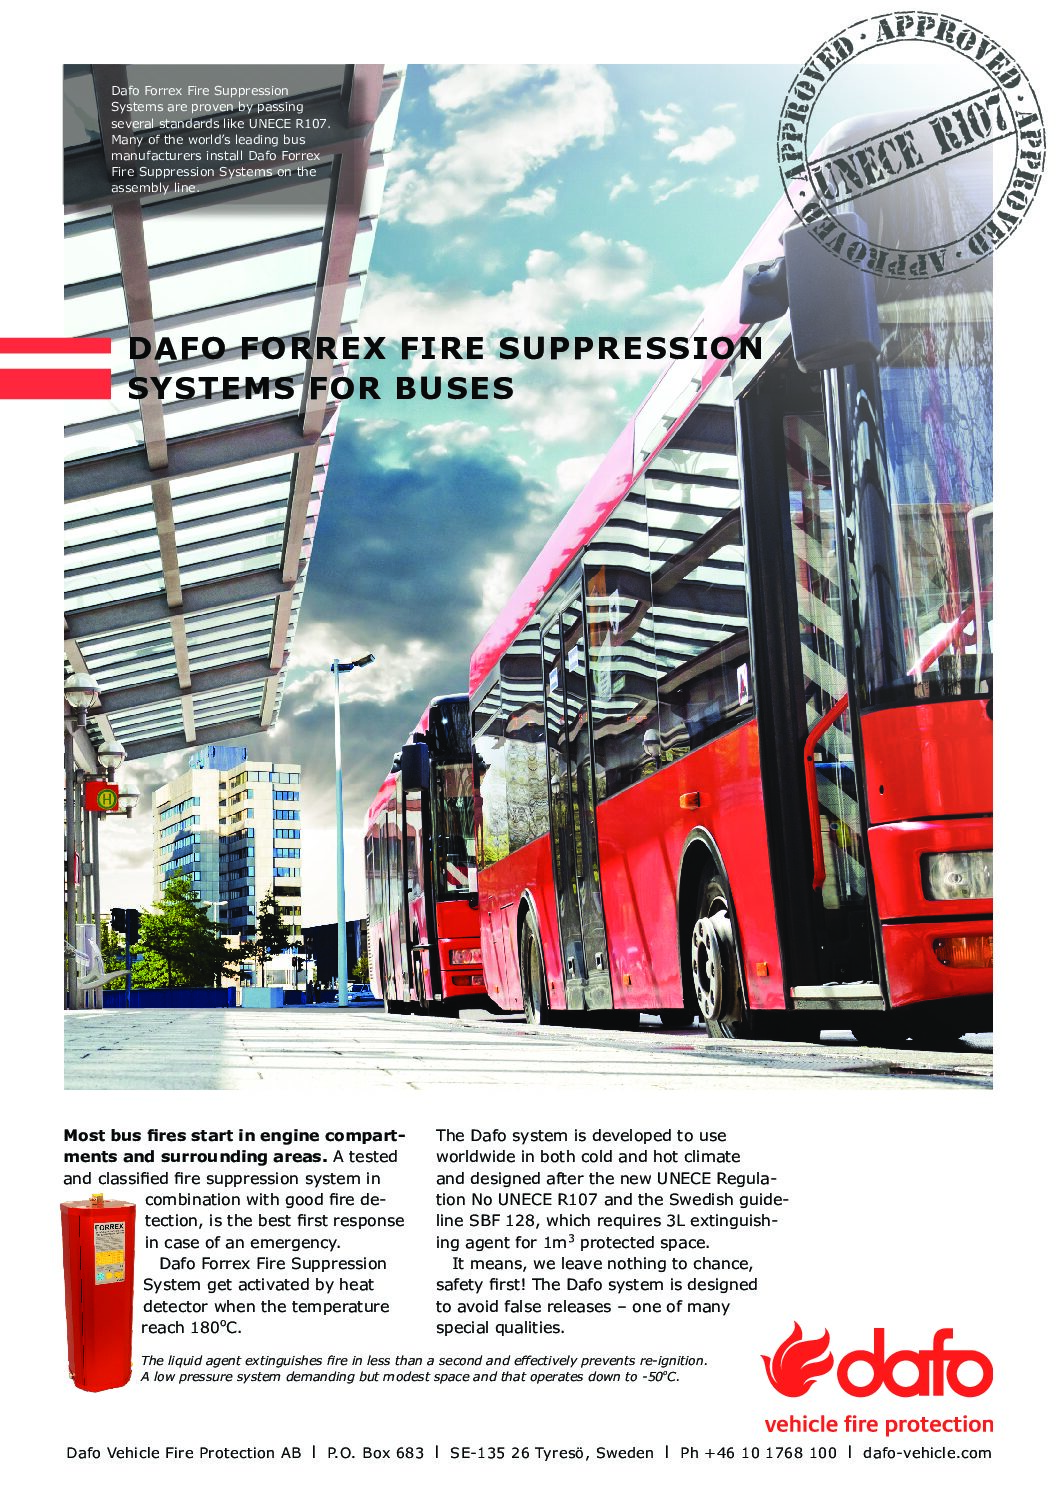 Dafo Forrex Fire Suppression Systems for Buses